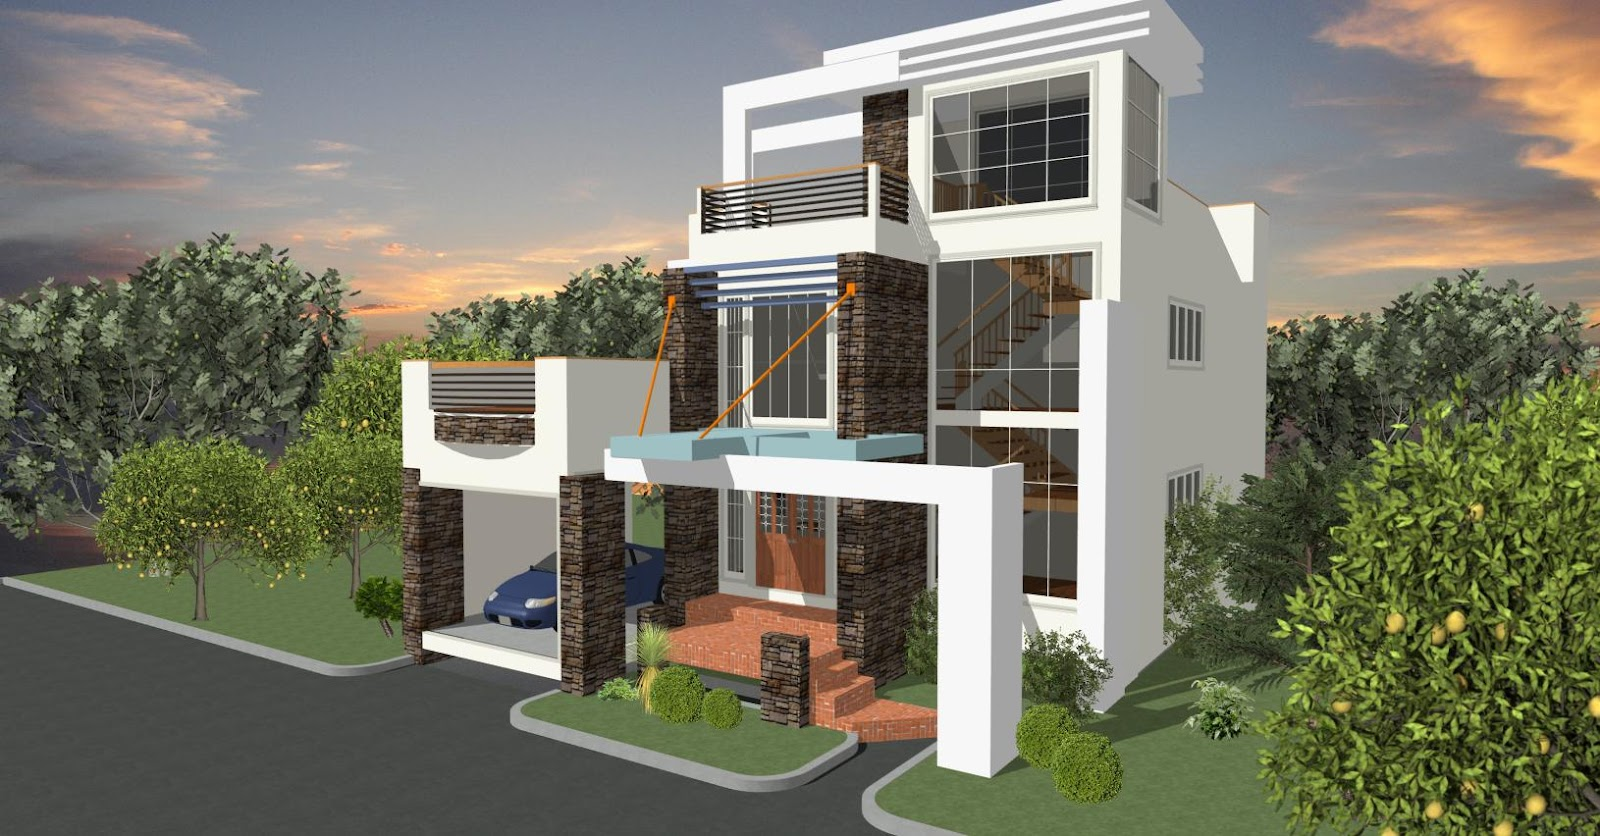 Model house designs philippines Home syle and design